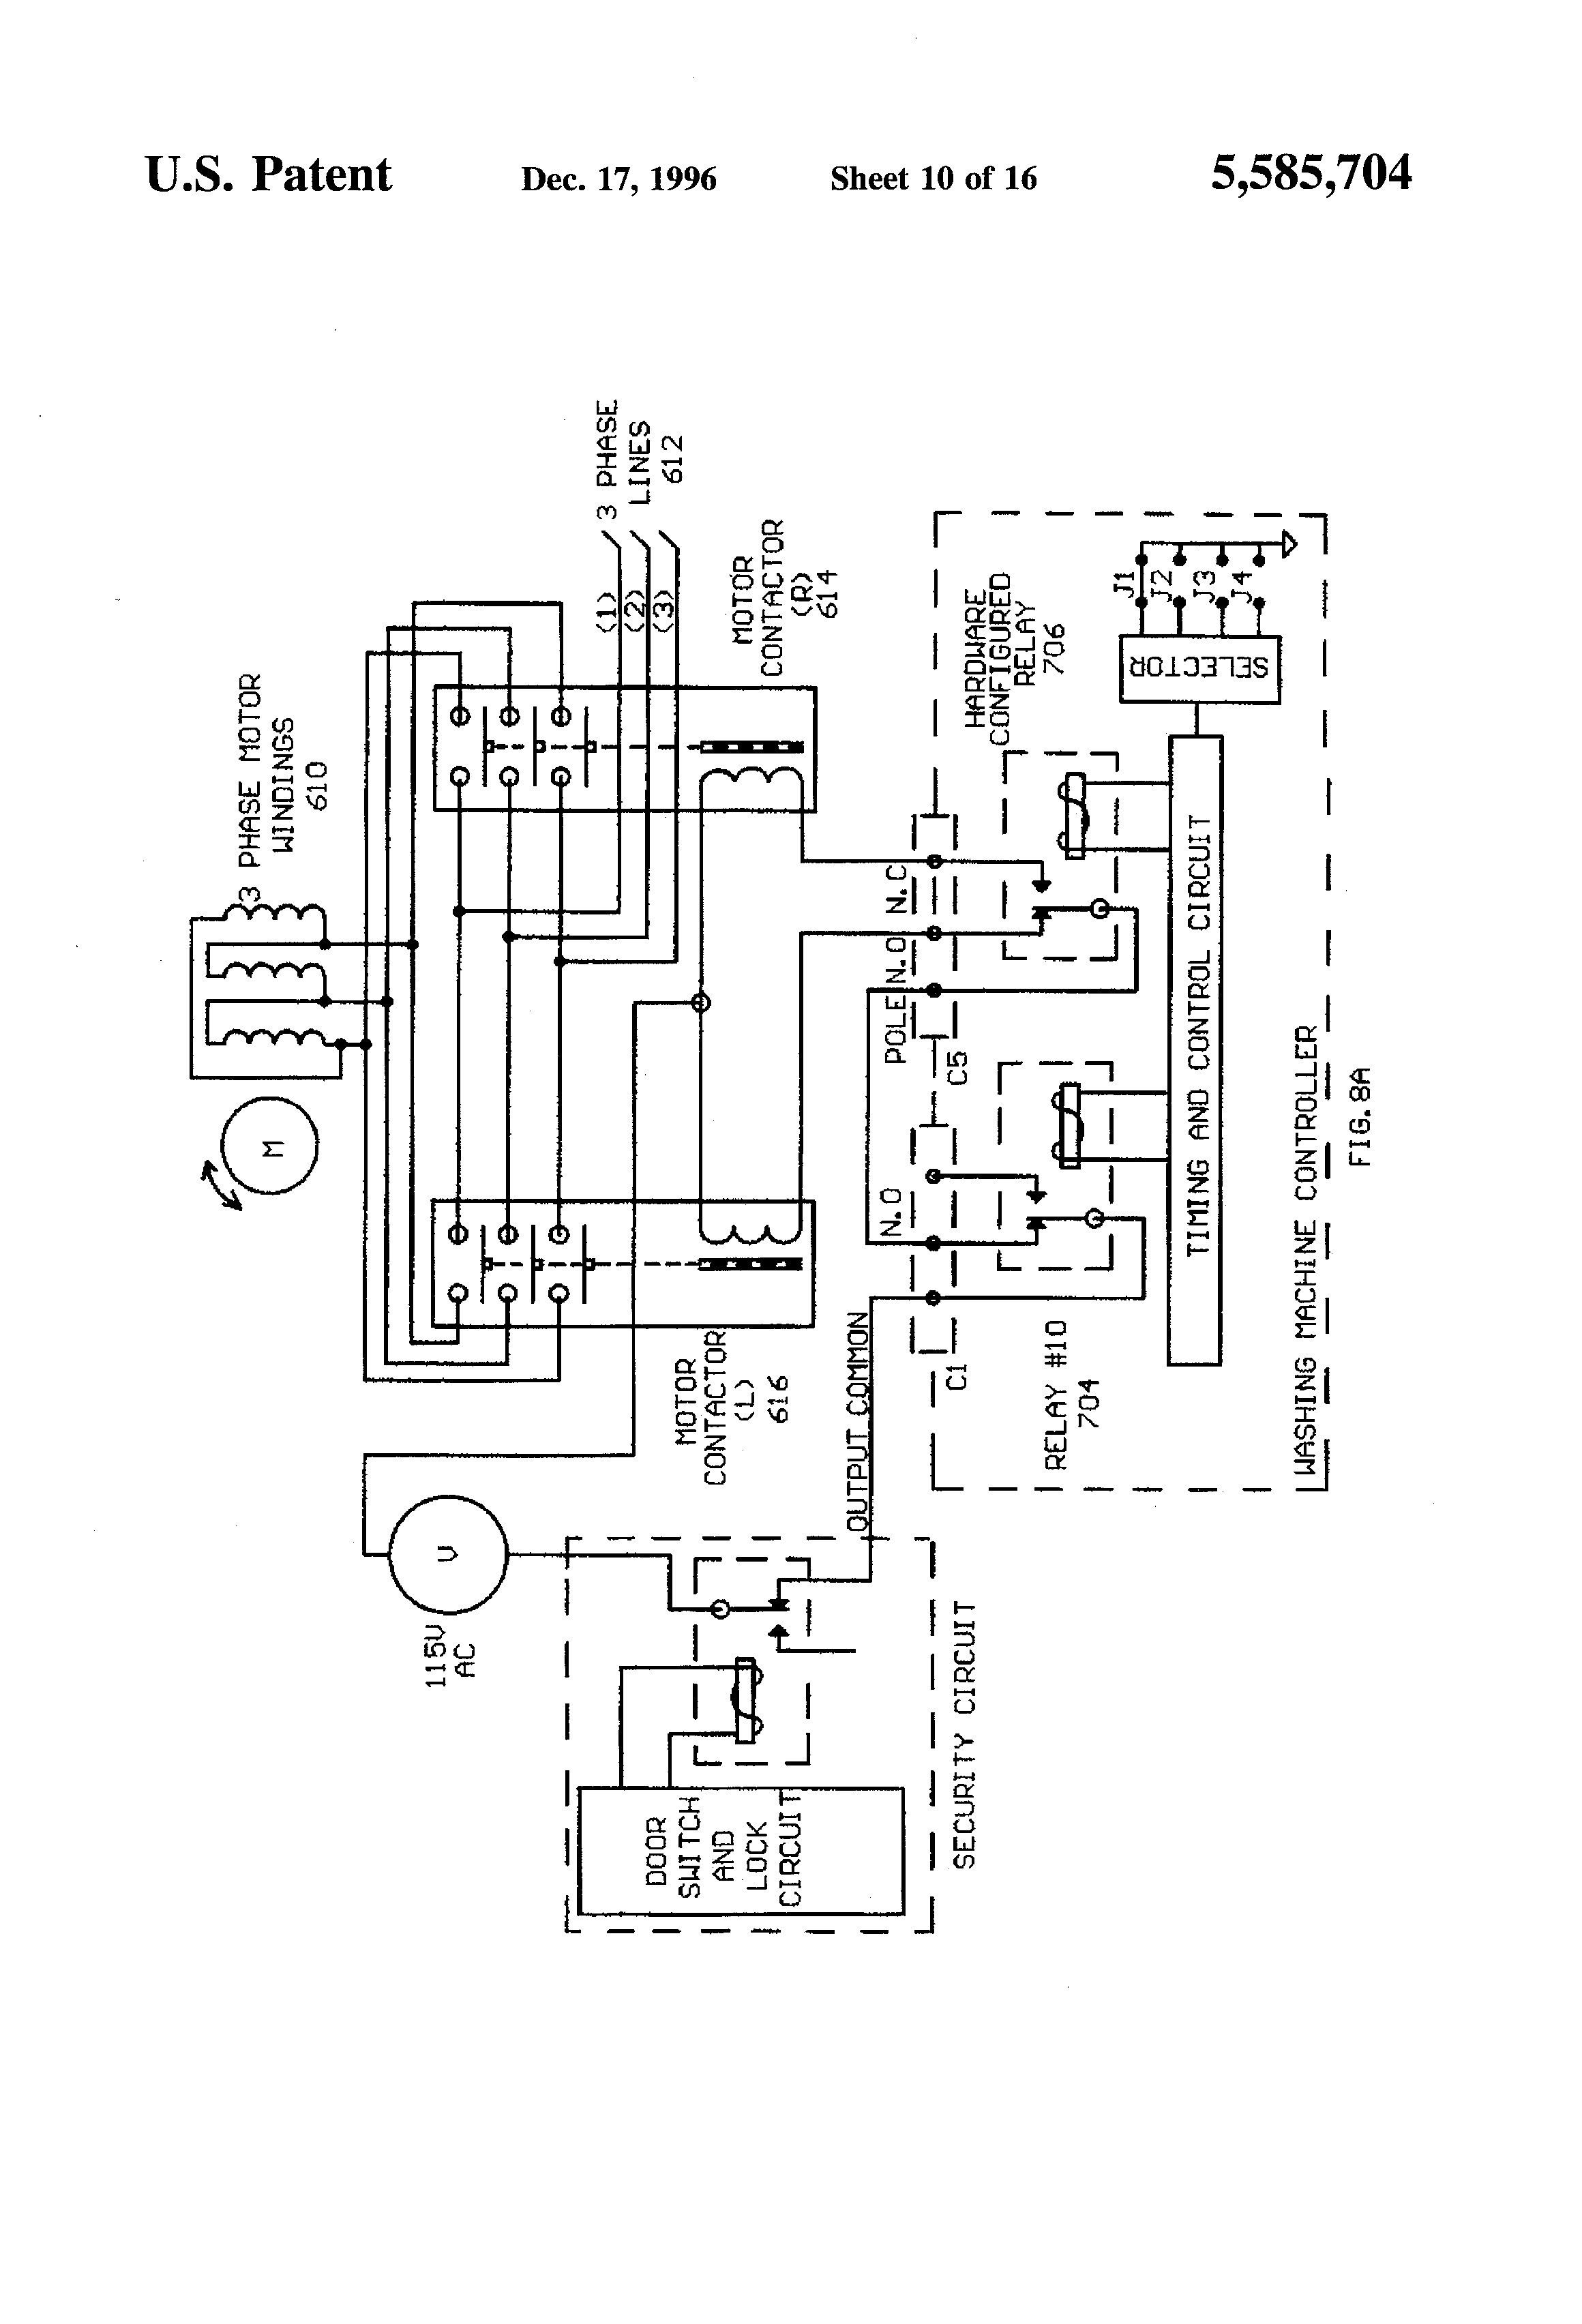 wiring diagram car wash diagram diagramtemplate diagramsamplewiring diagram car wash diagram diagramtemplate diagramsample [ 2320 x 3408 Pixel ]